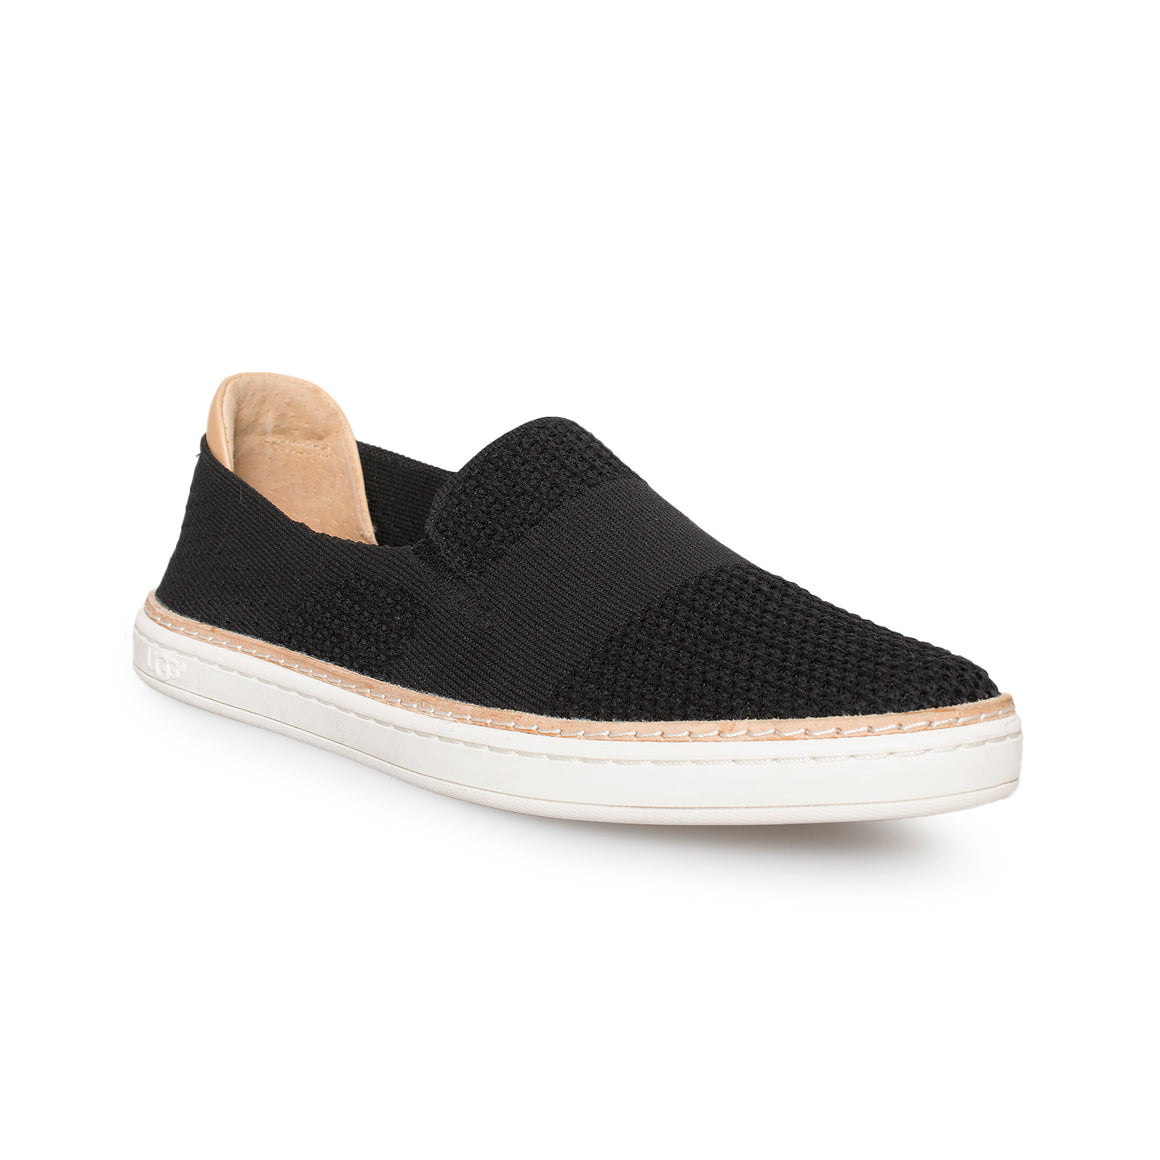 UGG Sammy Black Shoes - Women's